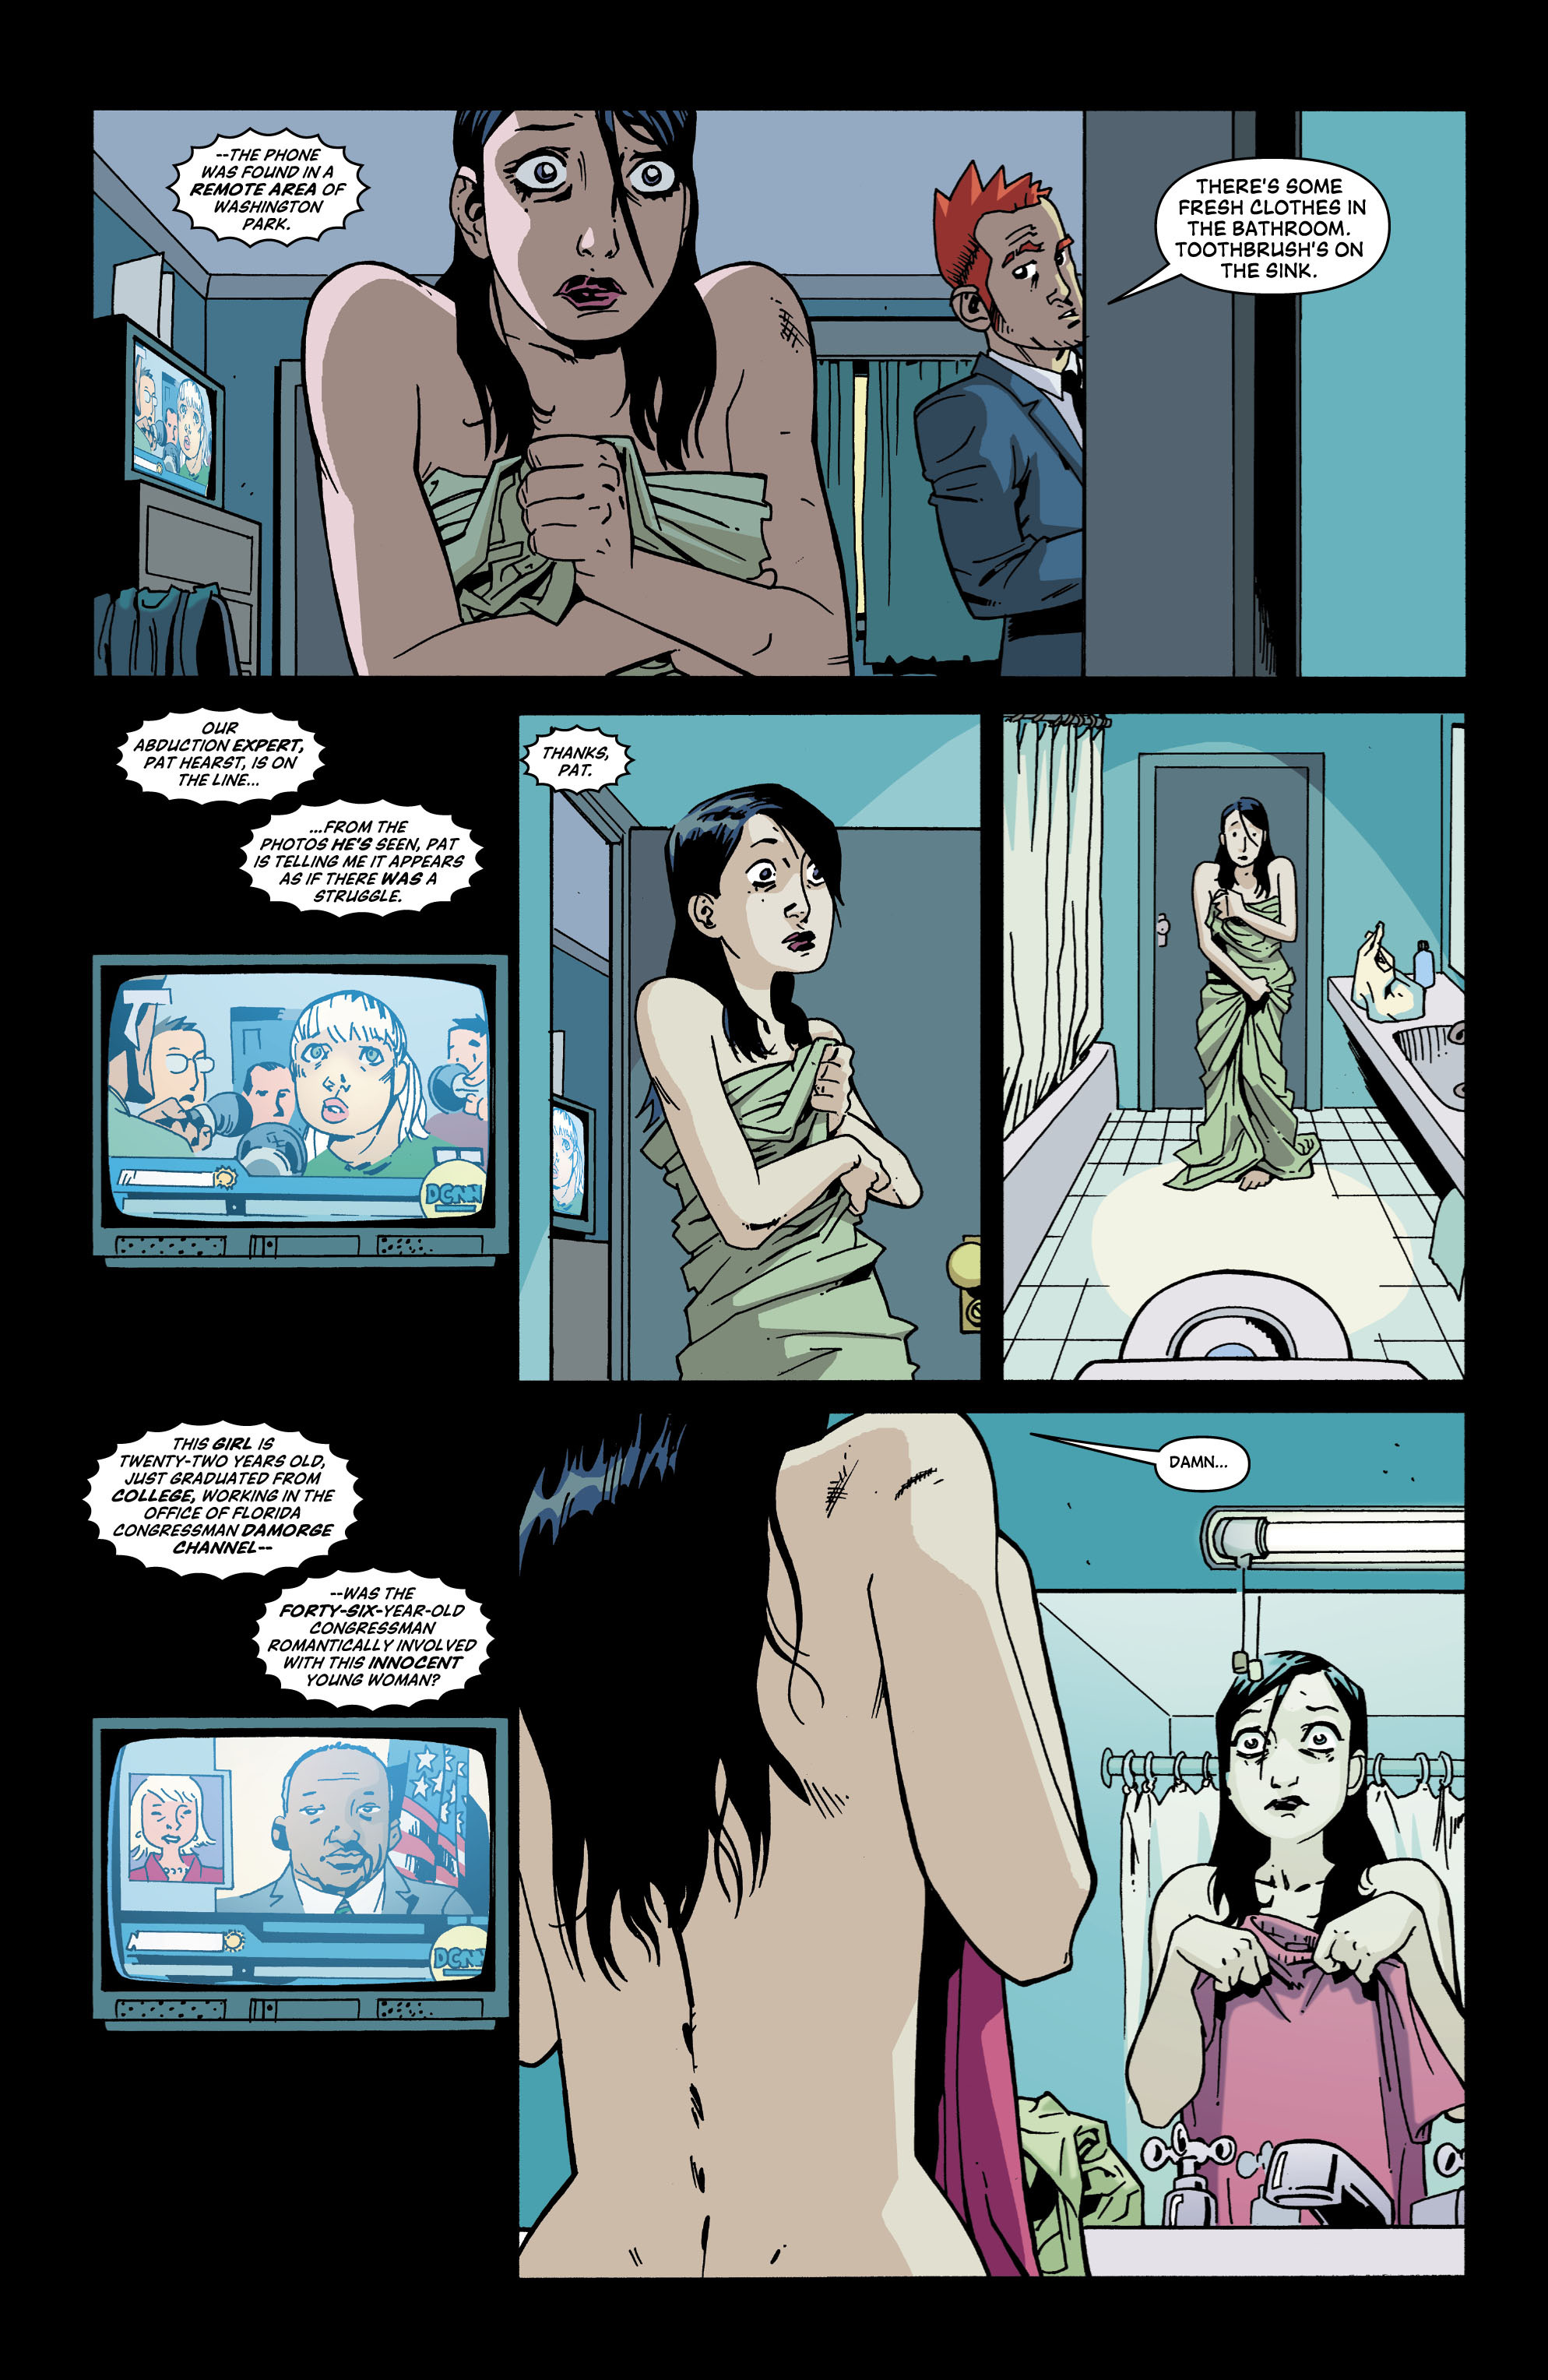 Read online Red Herring comic -  Issue #2 - 3